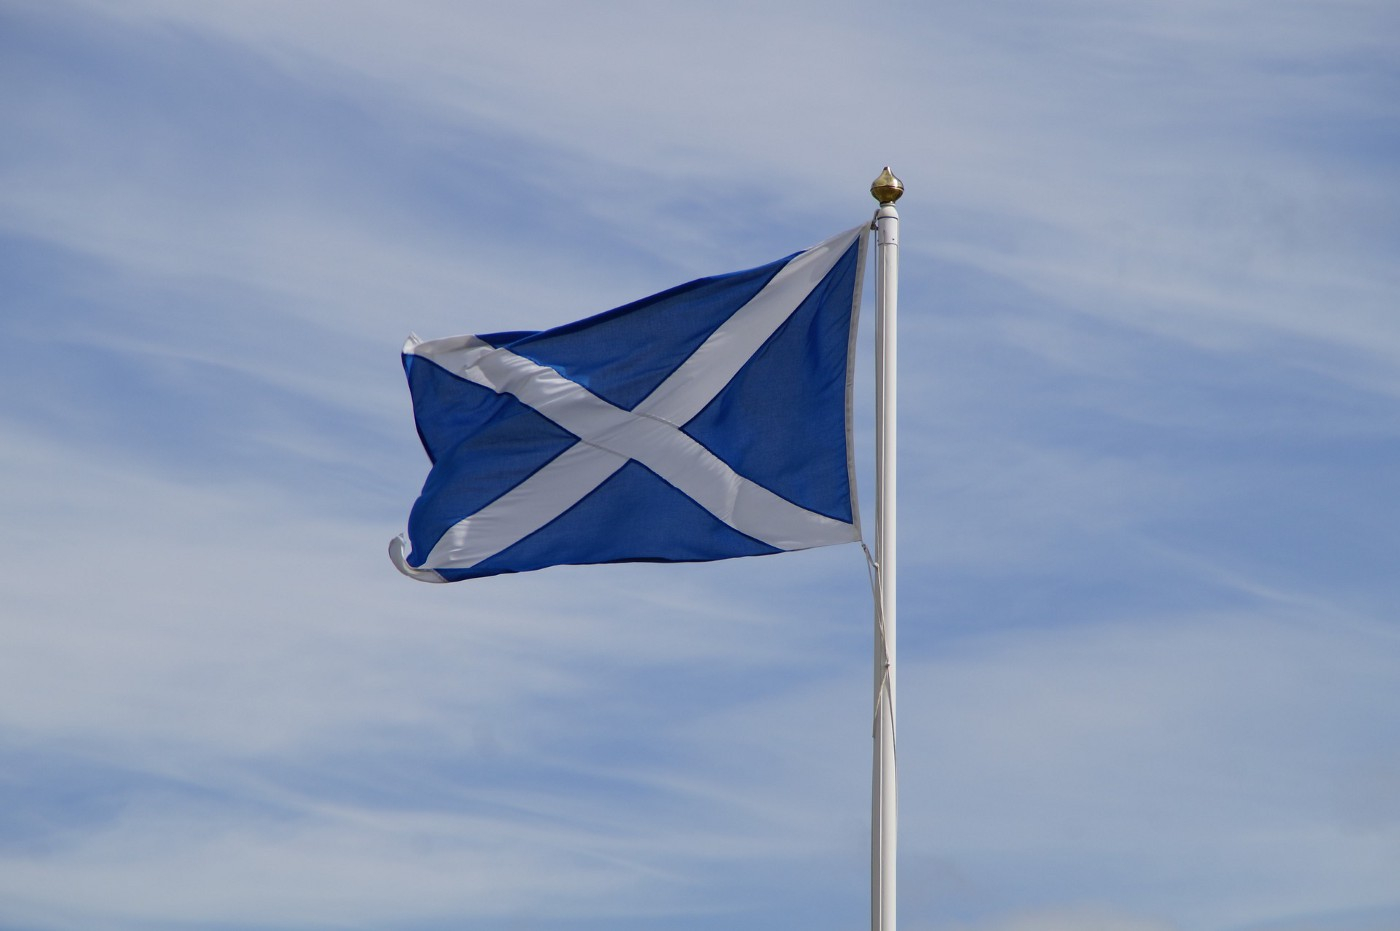 The flag of Scotland waves against a blue sky.